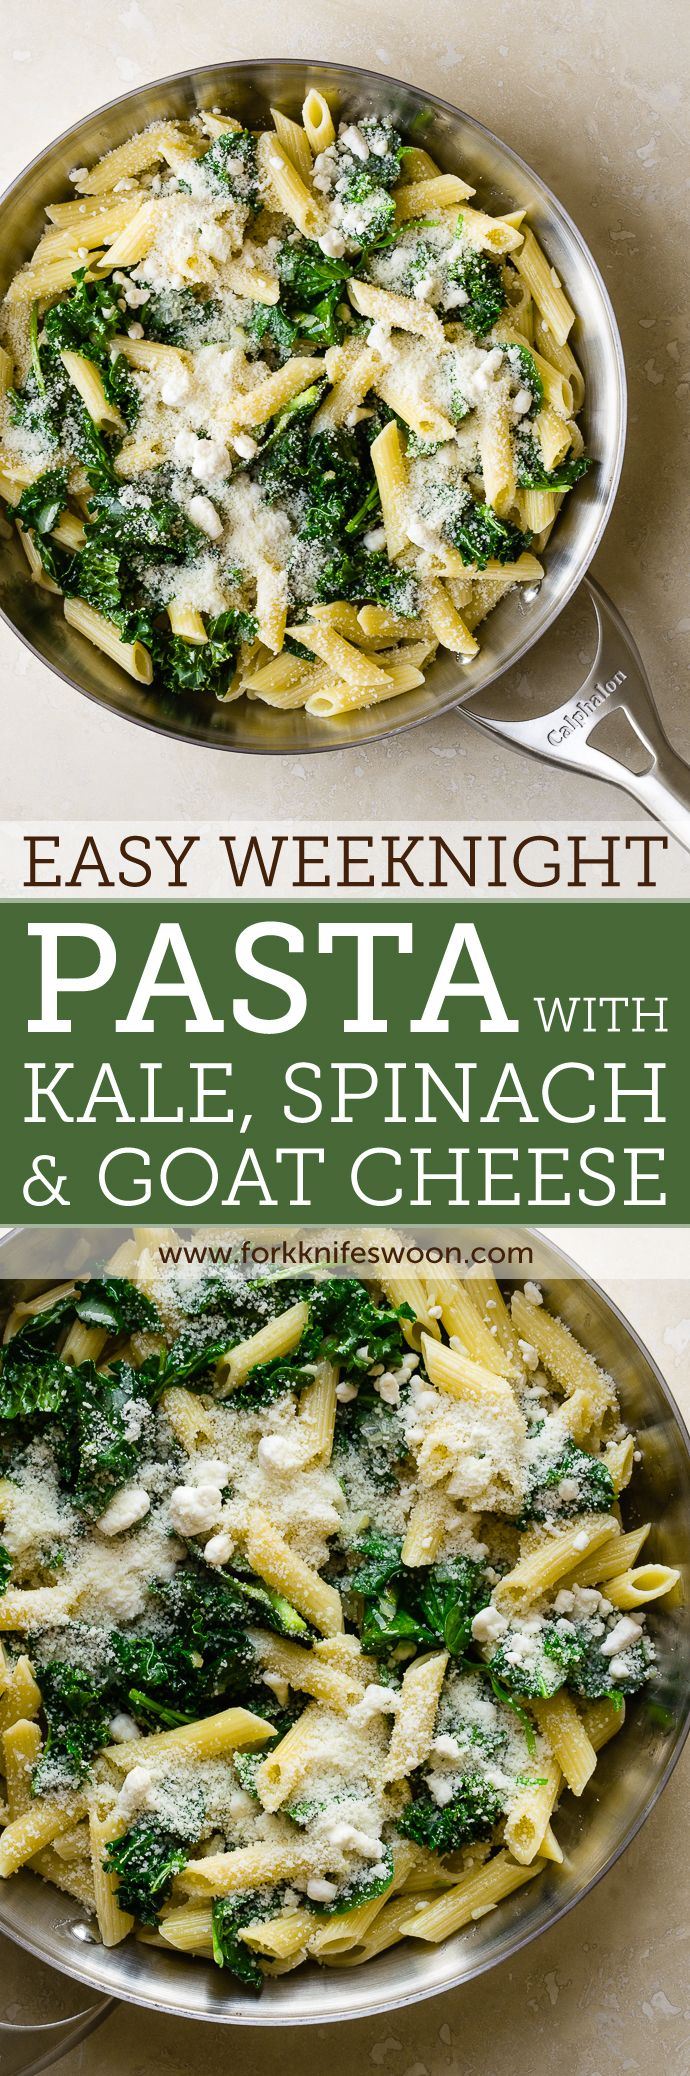 Easy Weeknight Pasta with Spinach, Kale and Goat Cheese   Fork Knife Swoon @forkknifeswoon